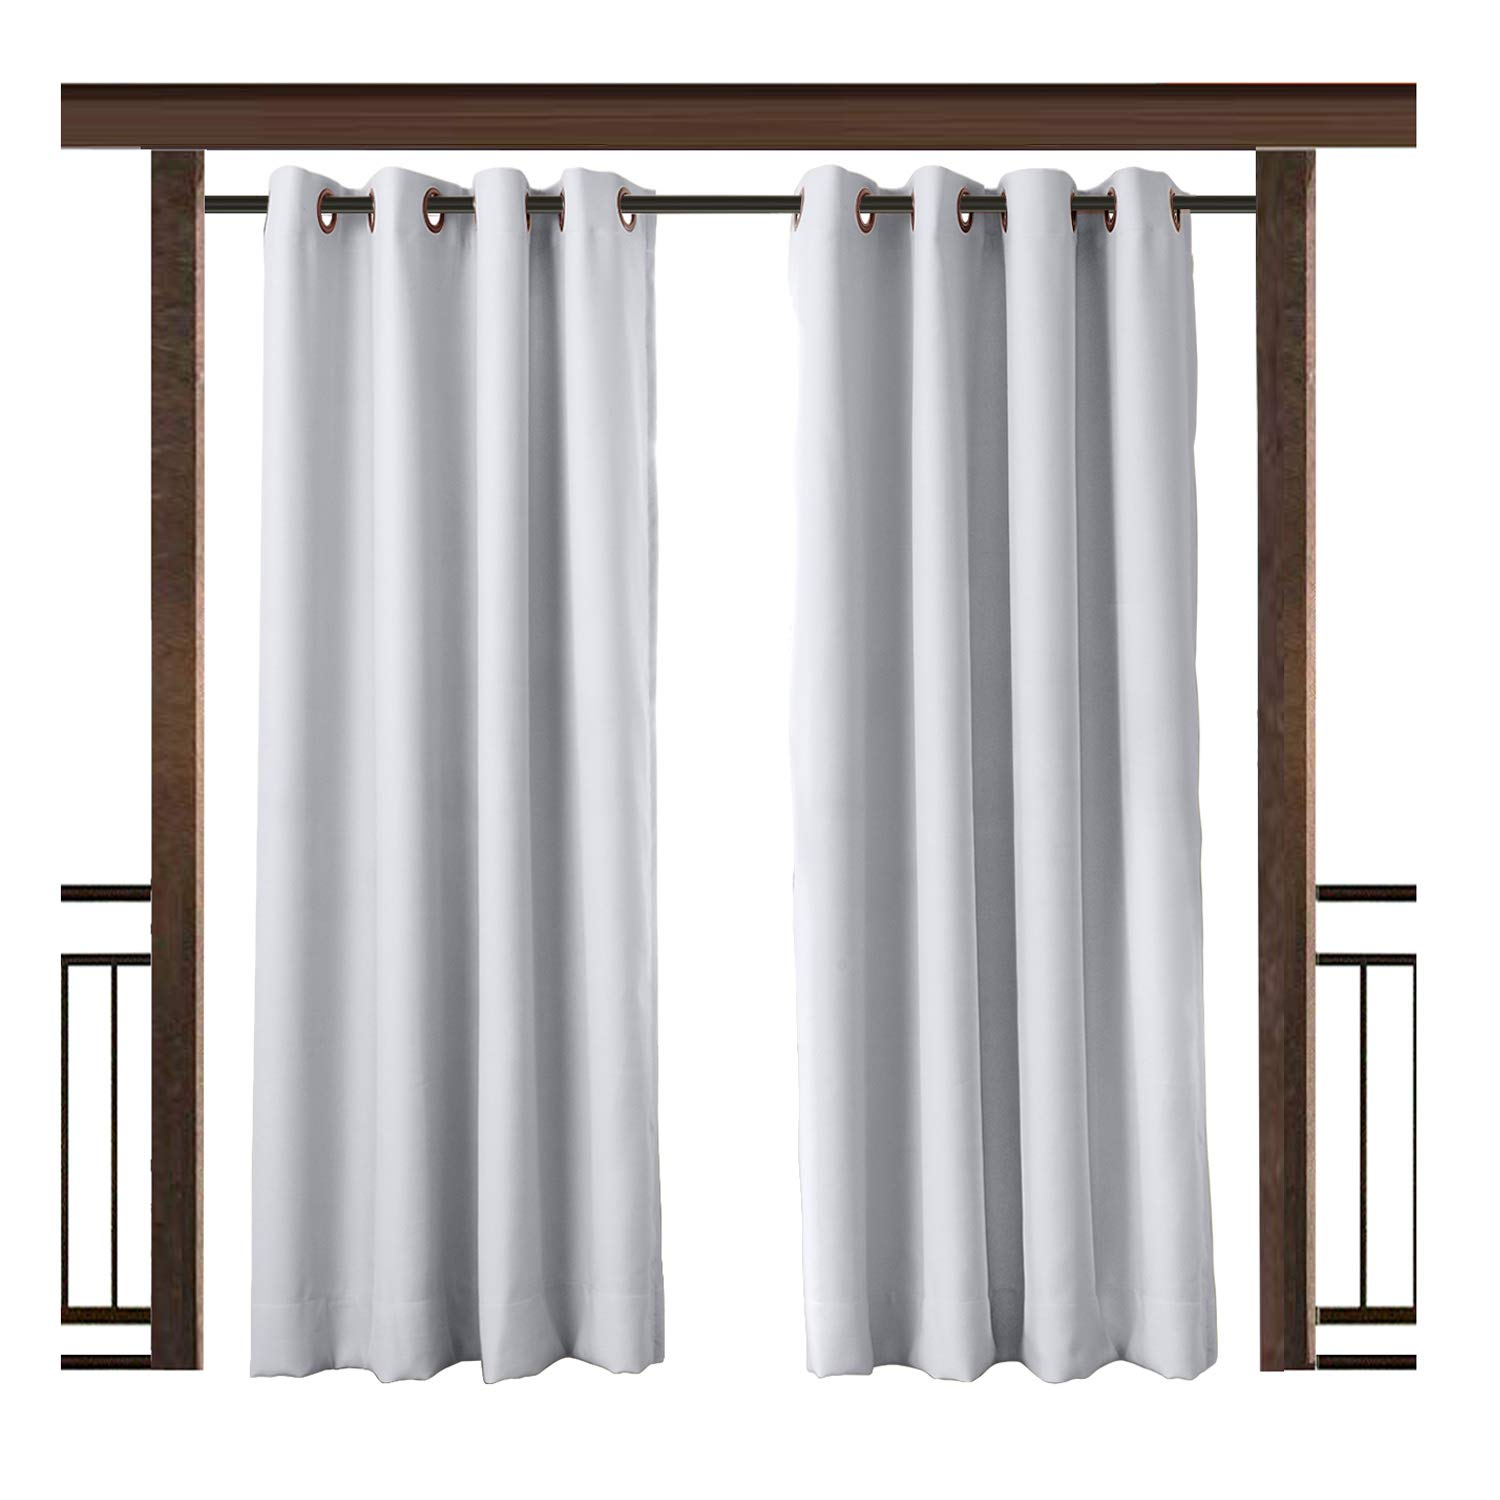 TWOPAGES Outdoor Waterproof Curtain White Grommet Drape, 100'' W x 96'' L For Front Porch Pergola Cabana Covered Patio Gazebo Dock Beach Home (1 panel)